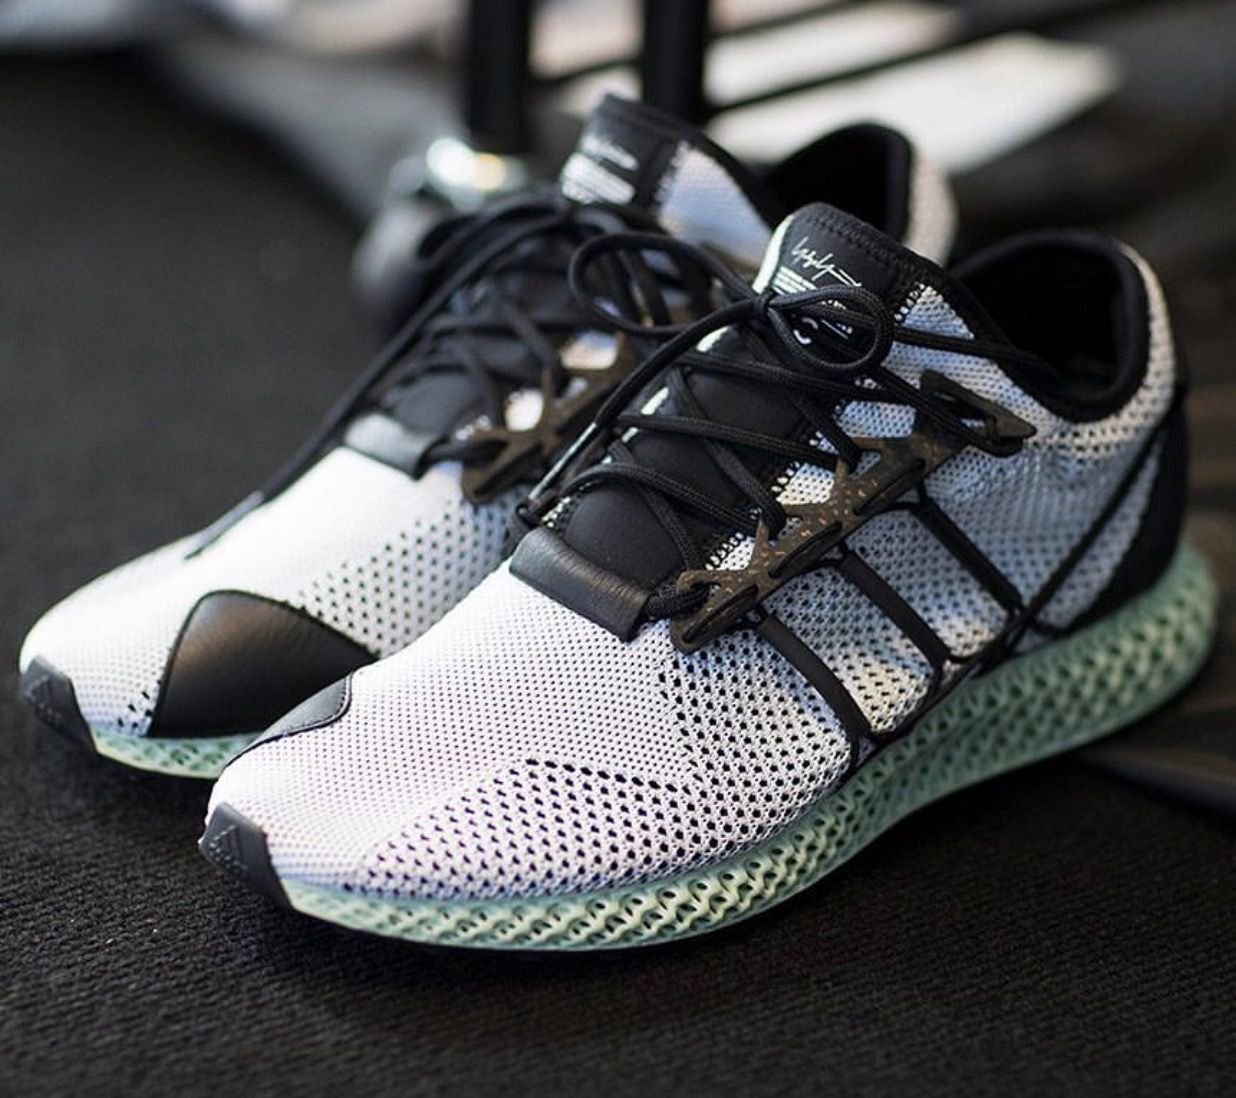 mens adidas zx 750 trainers methodology meaning and example of pronoun